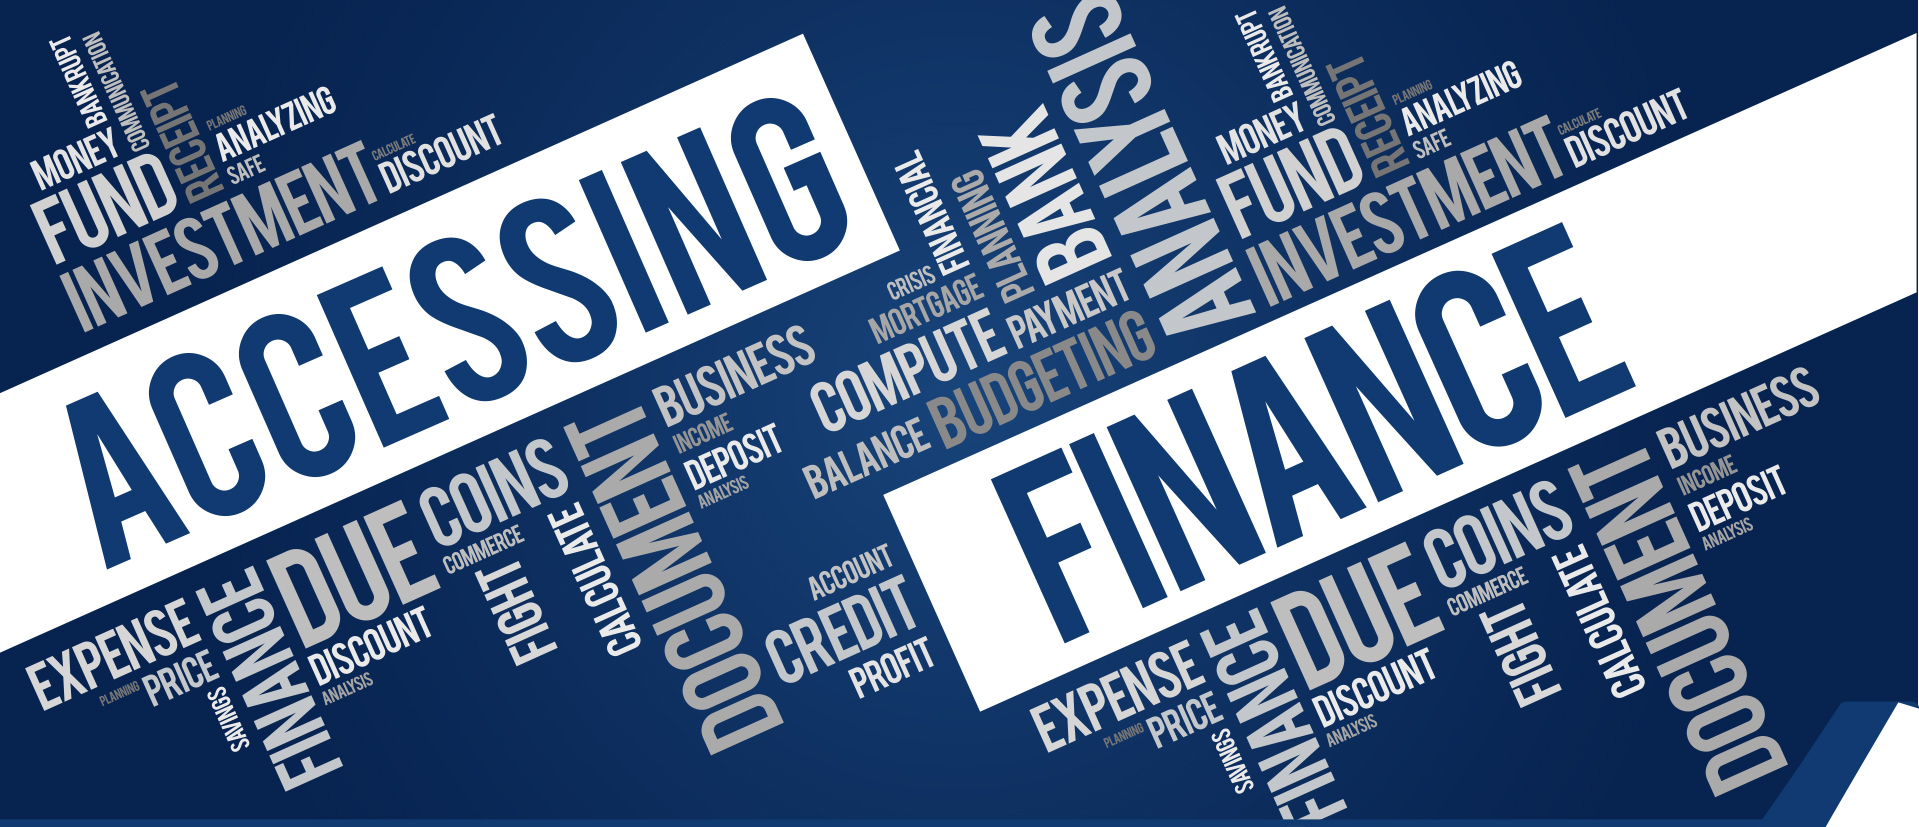 Accessing finance - Is it as difficult as our experience indicates? 1